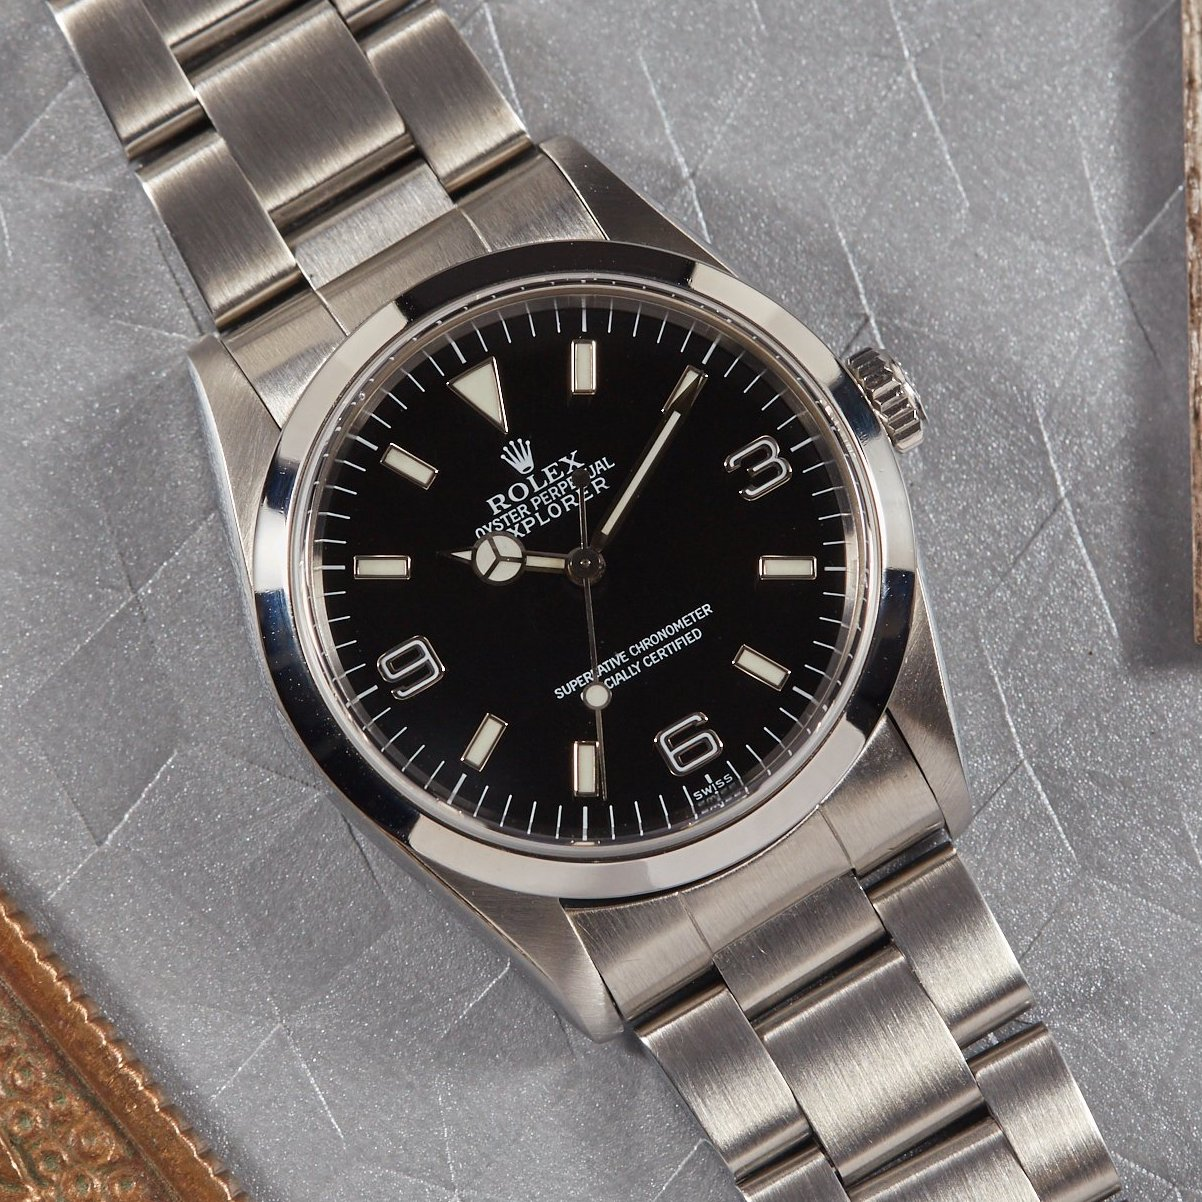 ROLEX_EXPLORER_I_SWISS_ONLY__AS03510_5